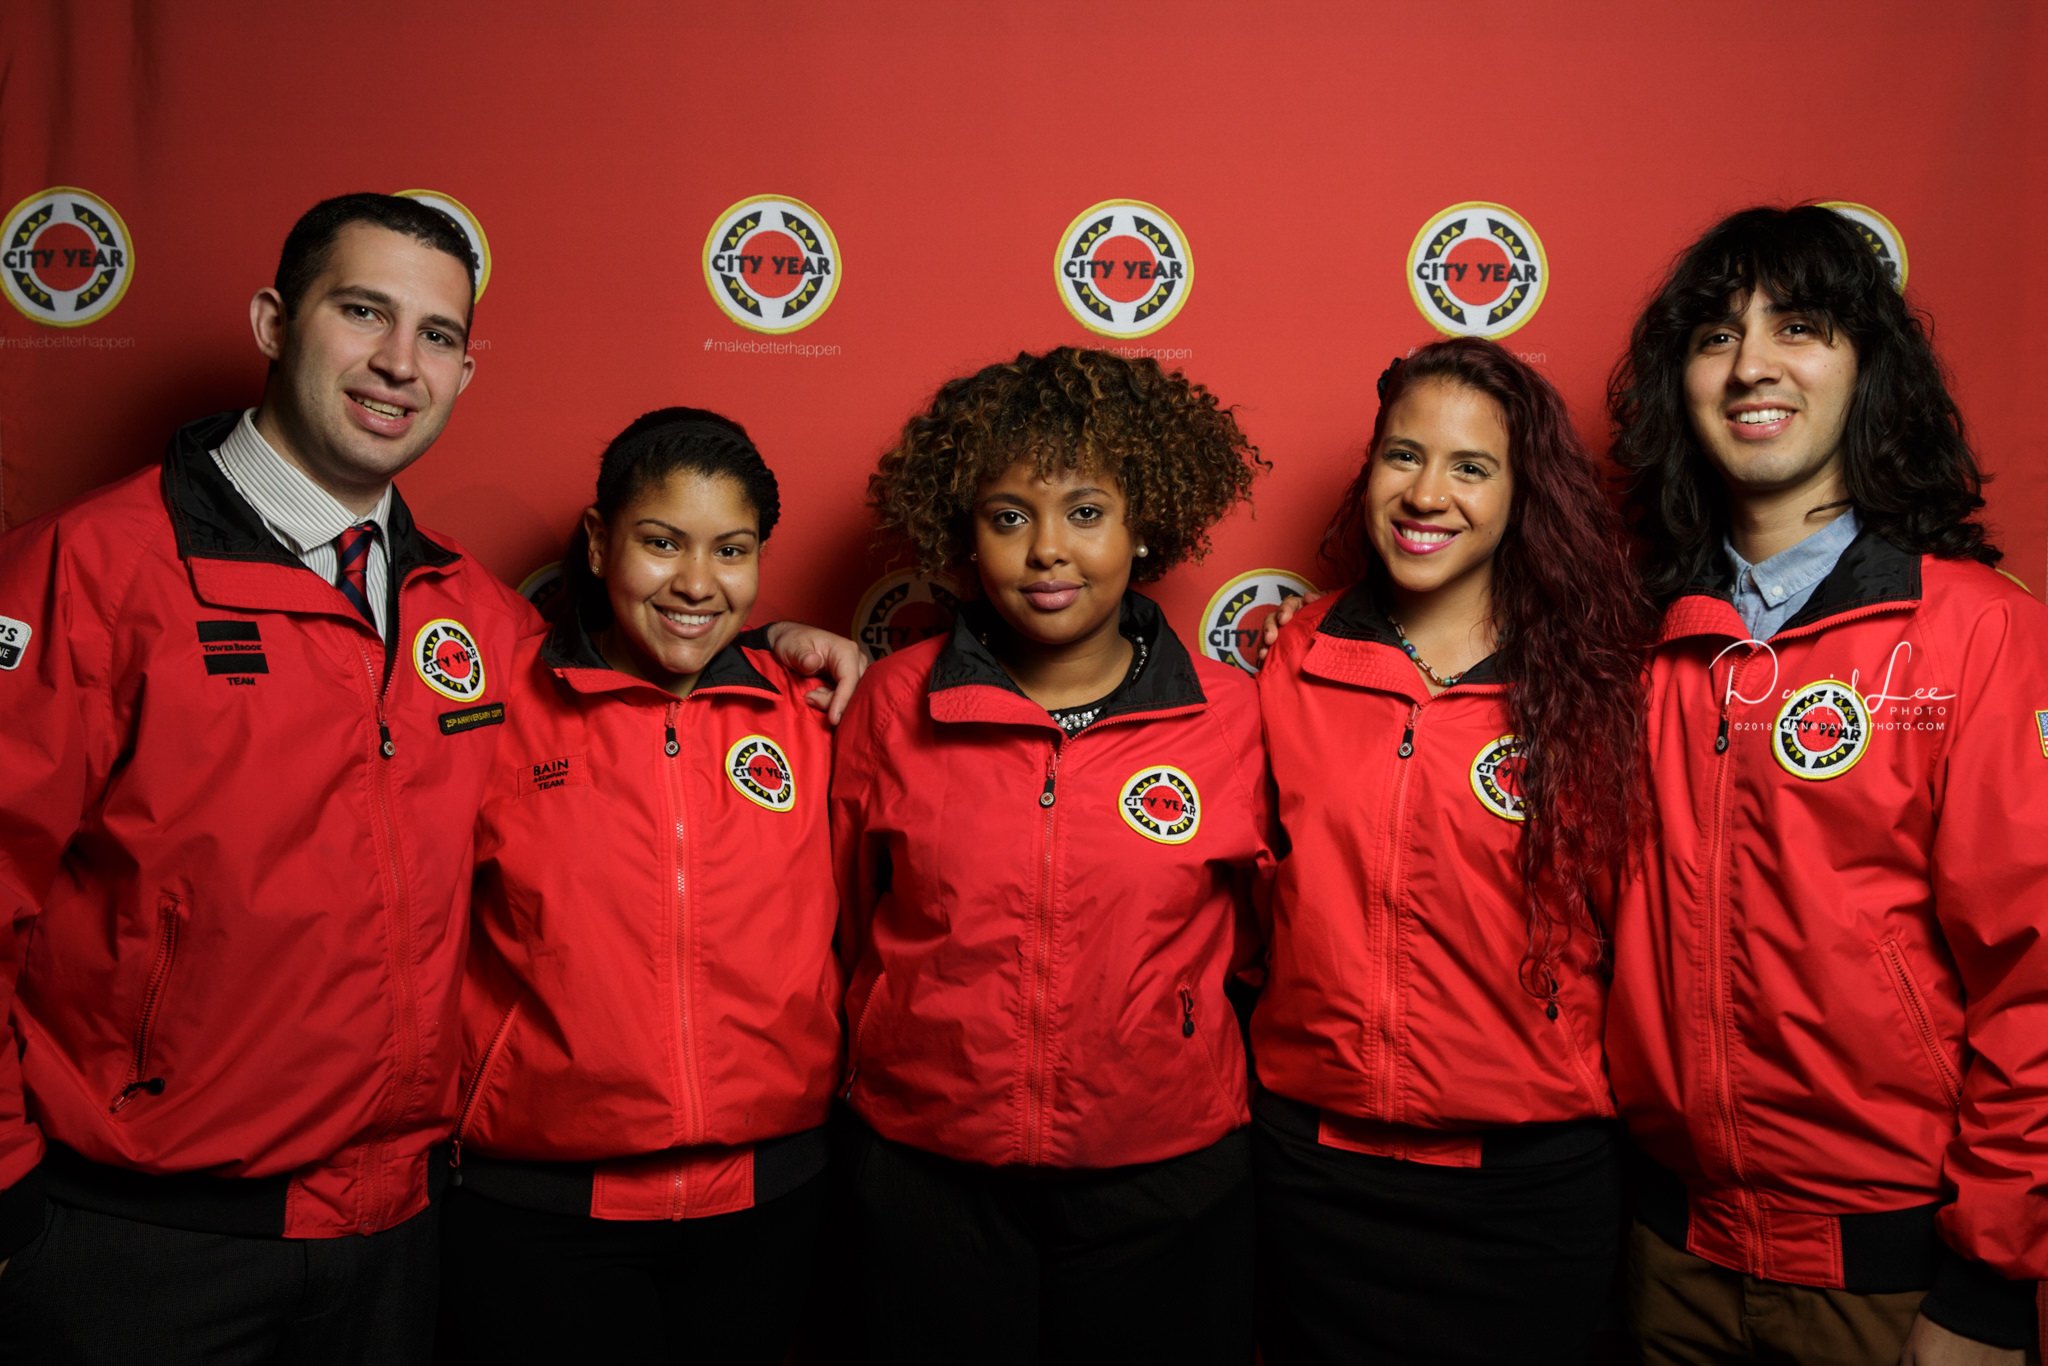 Senior AmeriCorps Members serving at City Year New York taken during CYNY's Annual Associate Board Member Fundraiser in Studio 8H at NBC Studios. Photo by Daniel Lee.